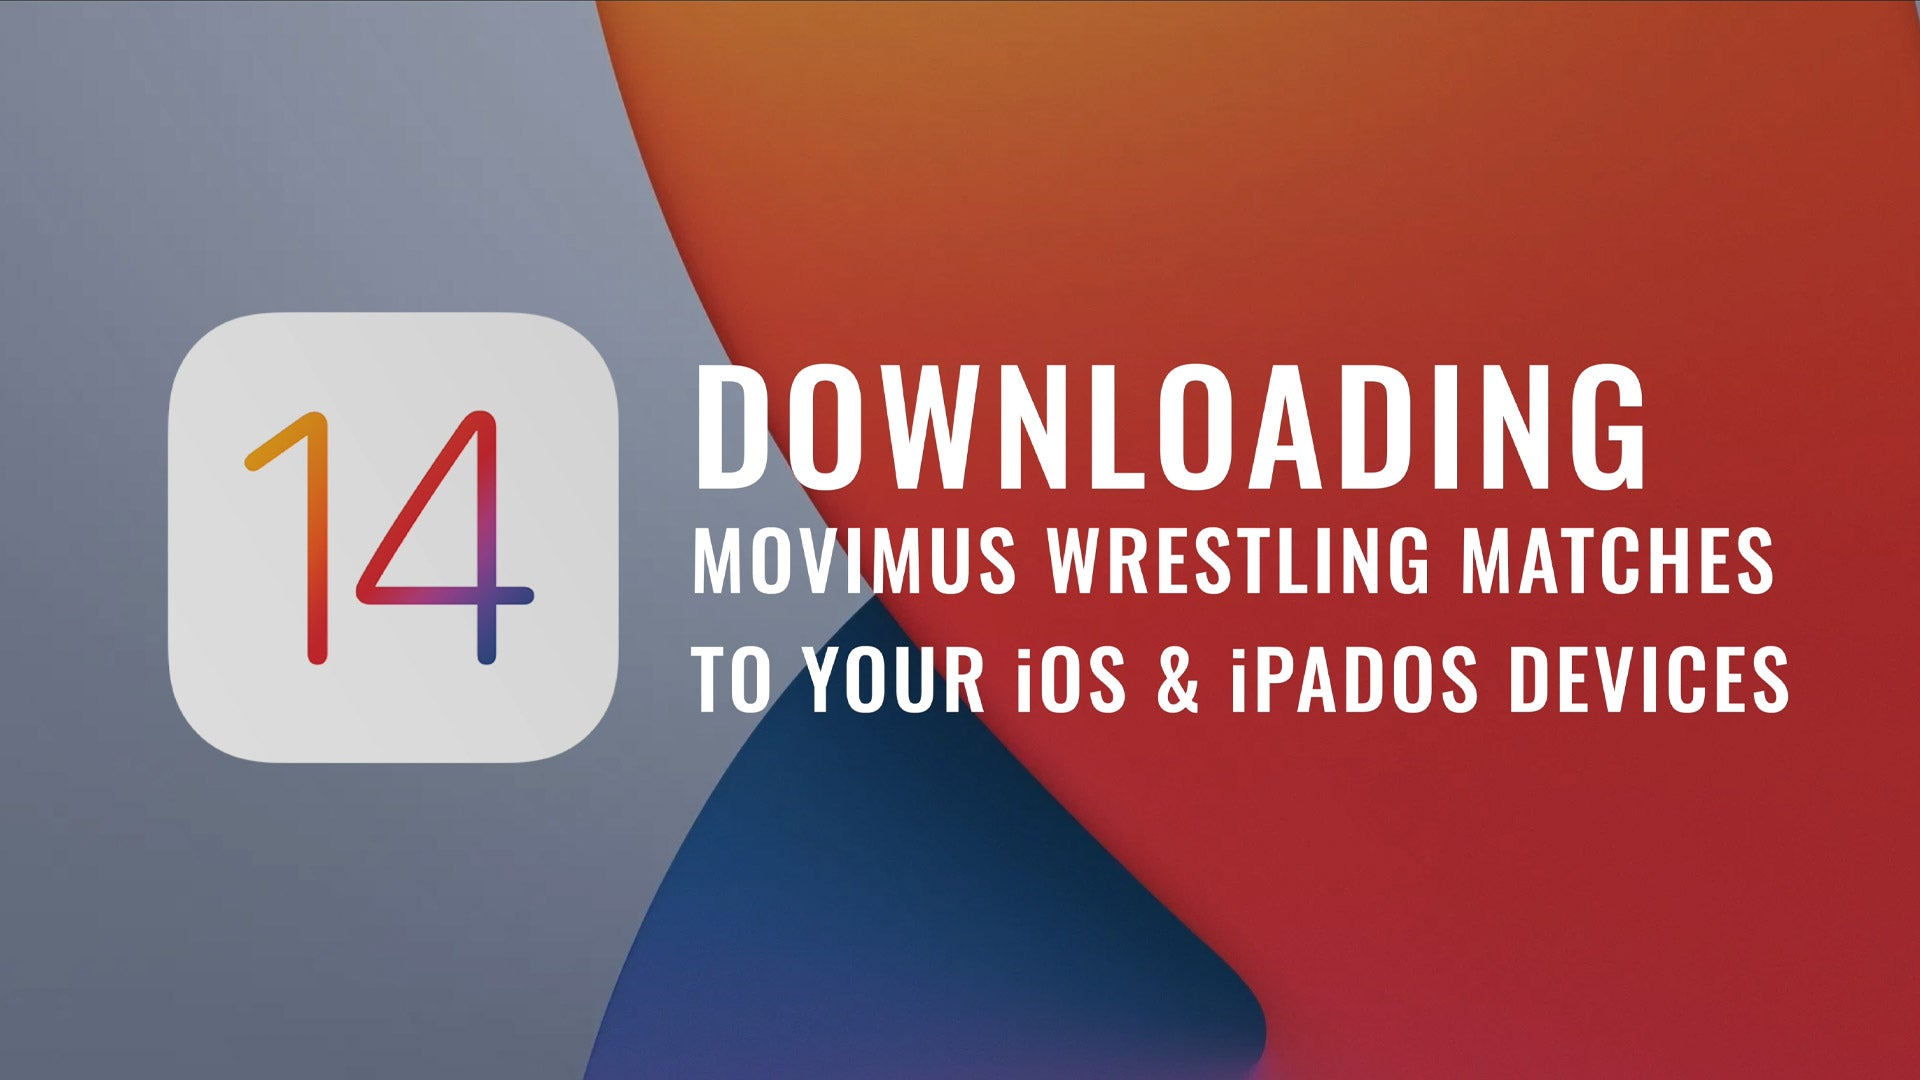 Downloading and viewing Movimus Wrestling matches on iPhones and iPads.